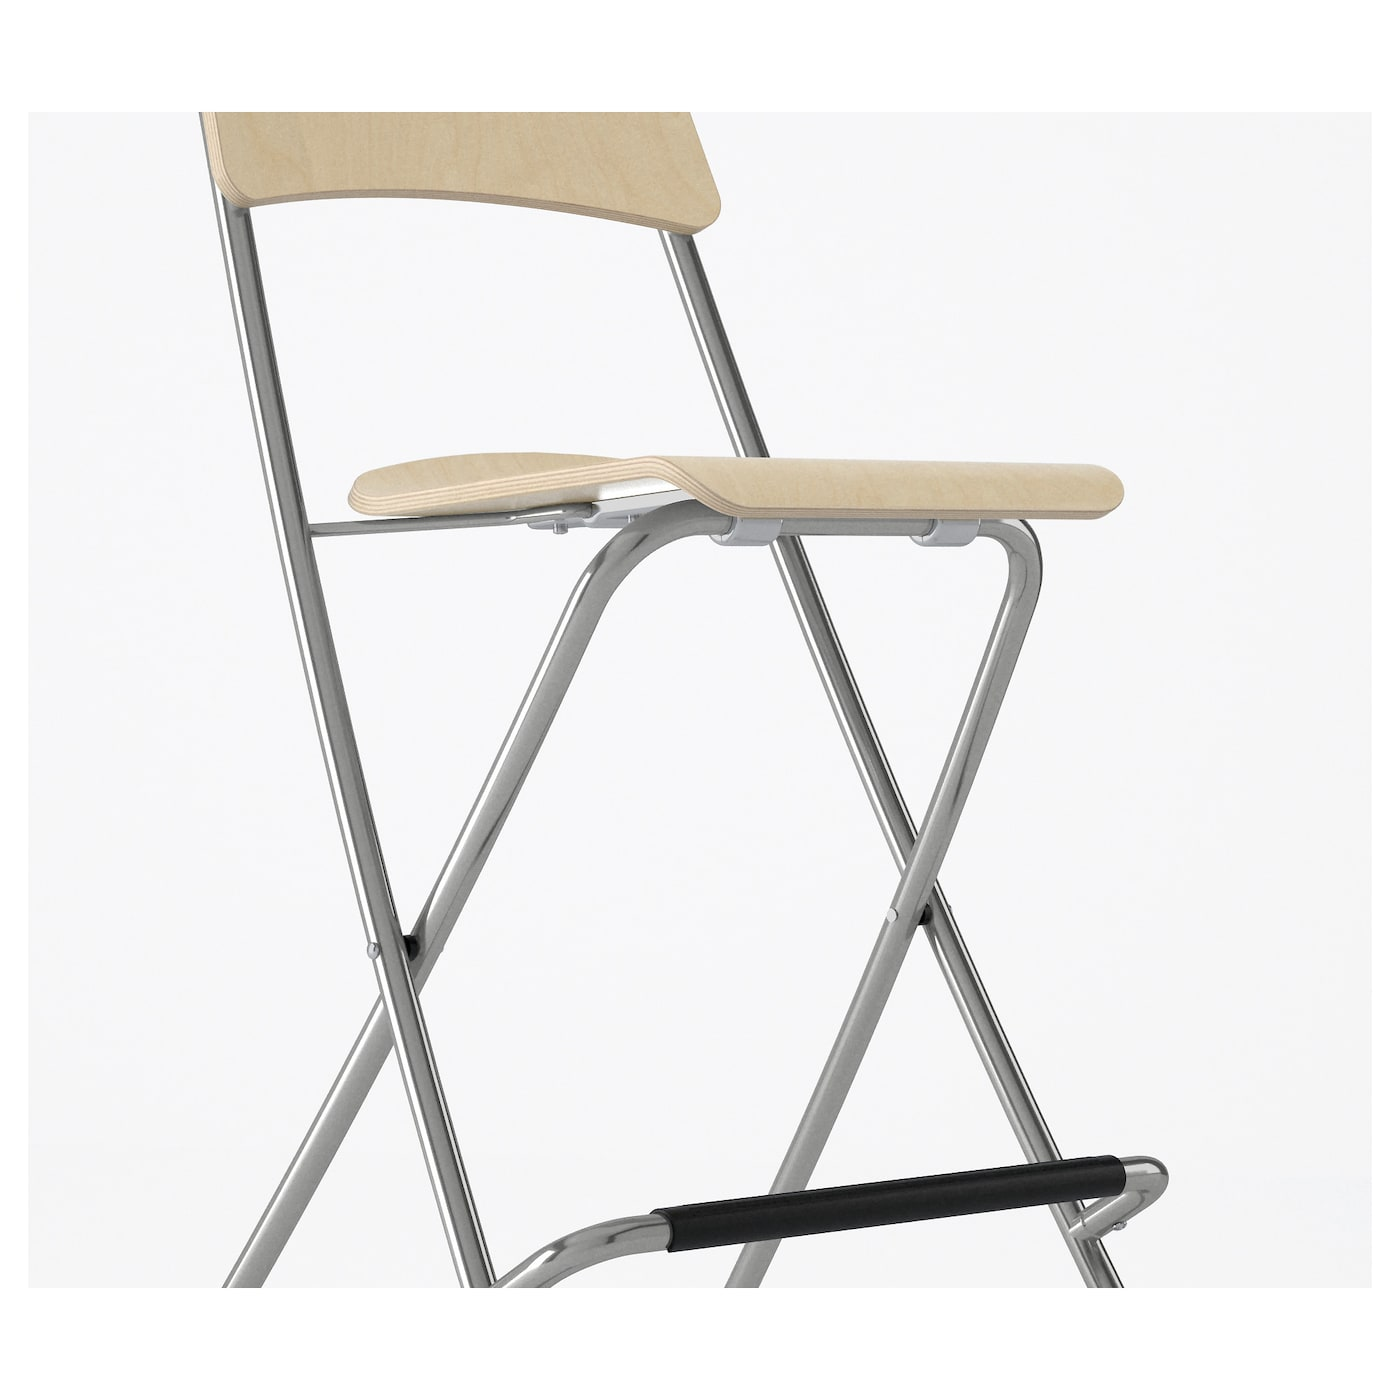 Ikea Franklin Bar Stool With Backrest Foldable Footrest For Relaxed Sitting Posture